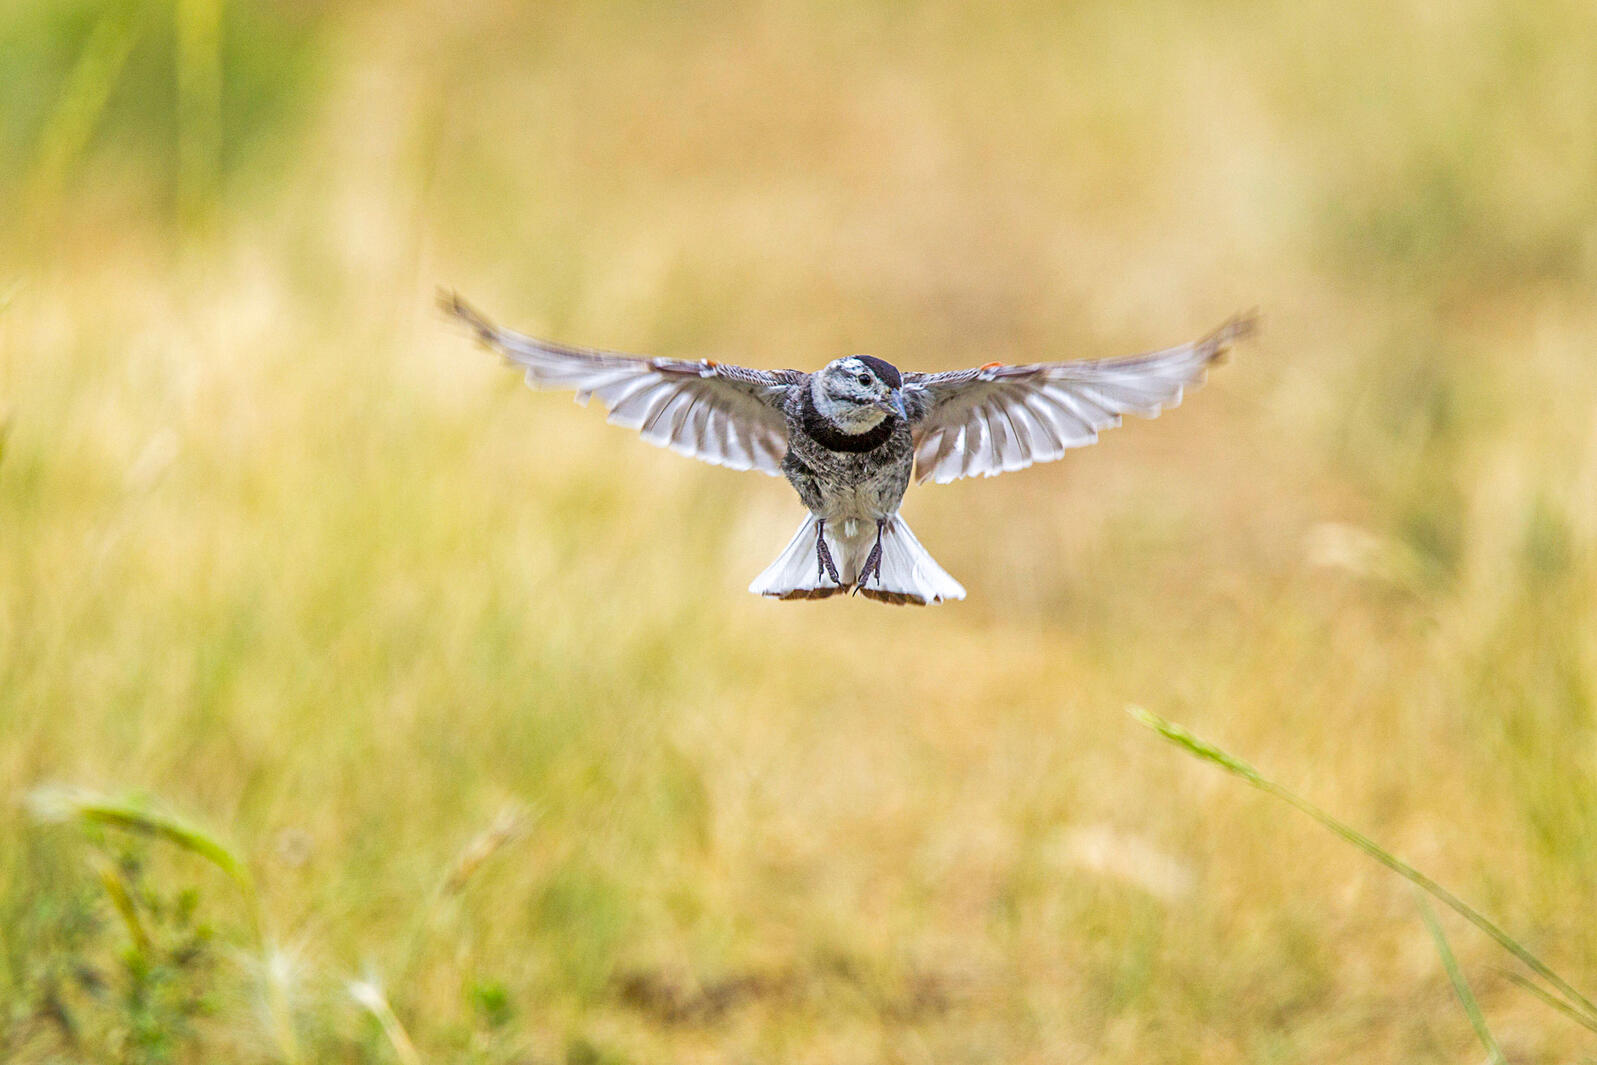 The Mccown S Longspur Is No More But The Debate Over Bird Names Continues Audubon